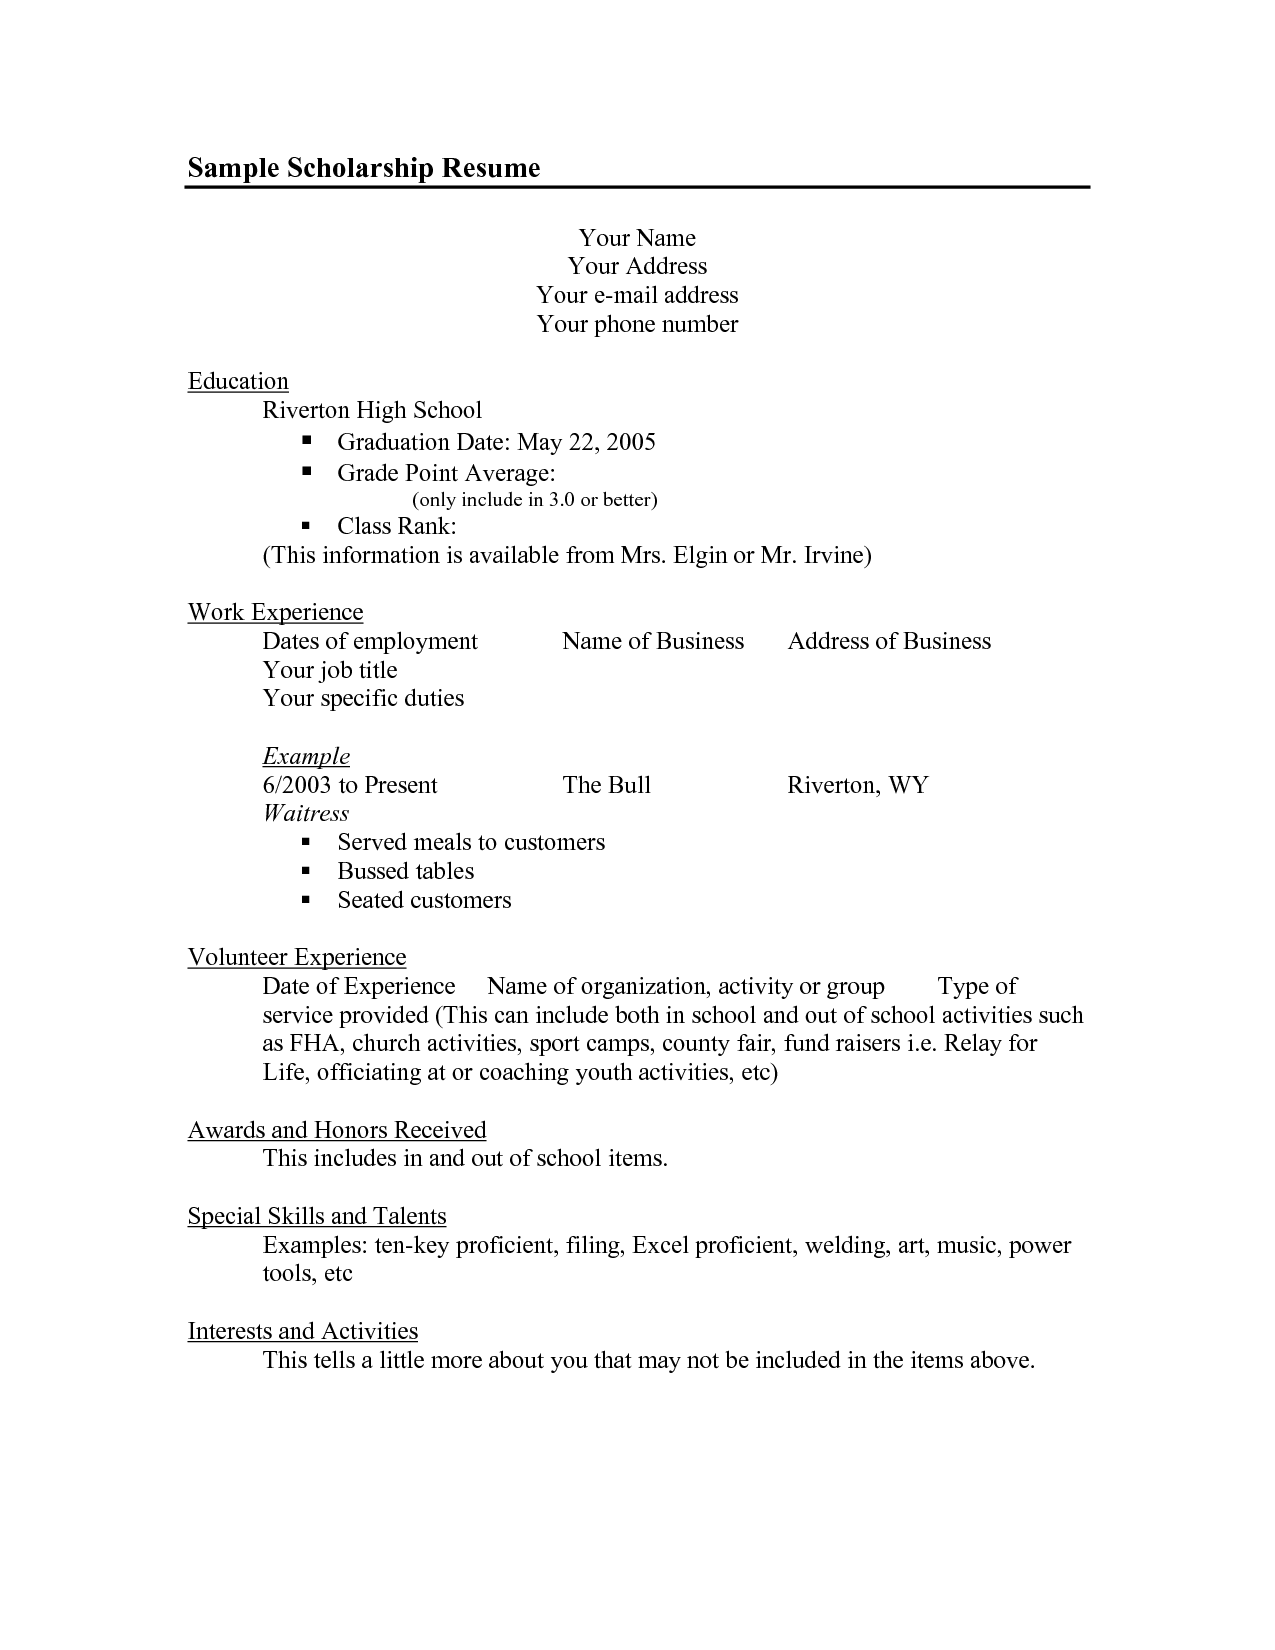 Scholarship Resume Templates Sample Scholarship Resume Graduation